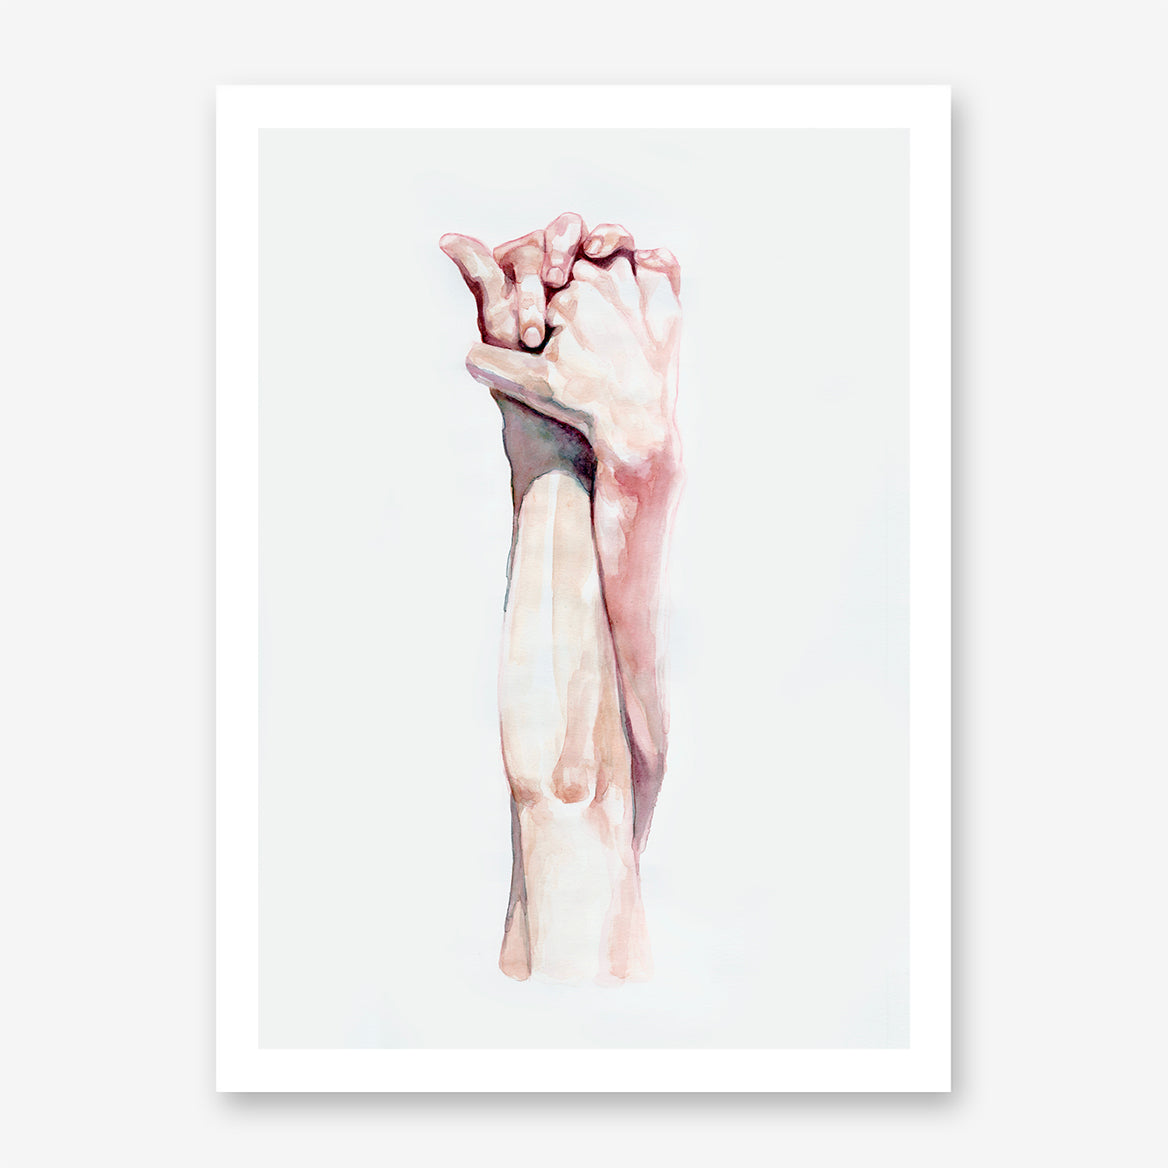 Holding hands minimalist poster print, by Shopia Novosel